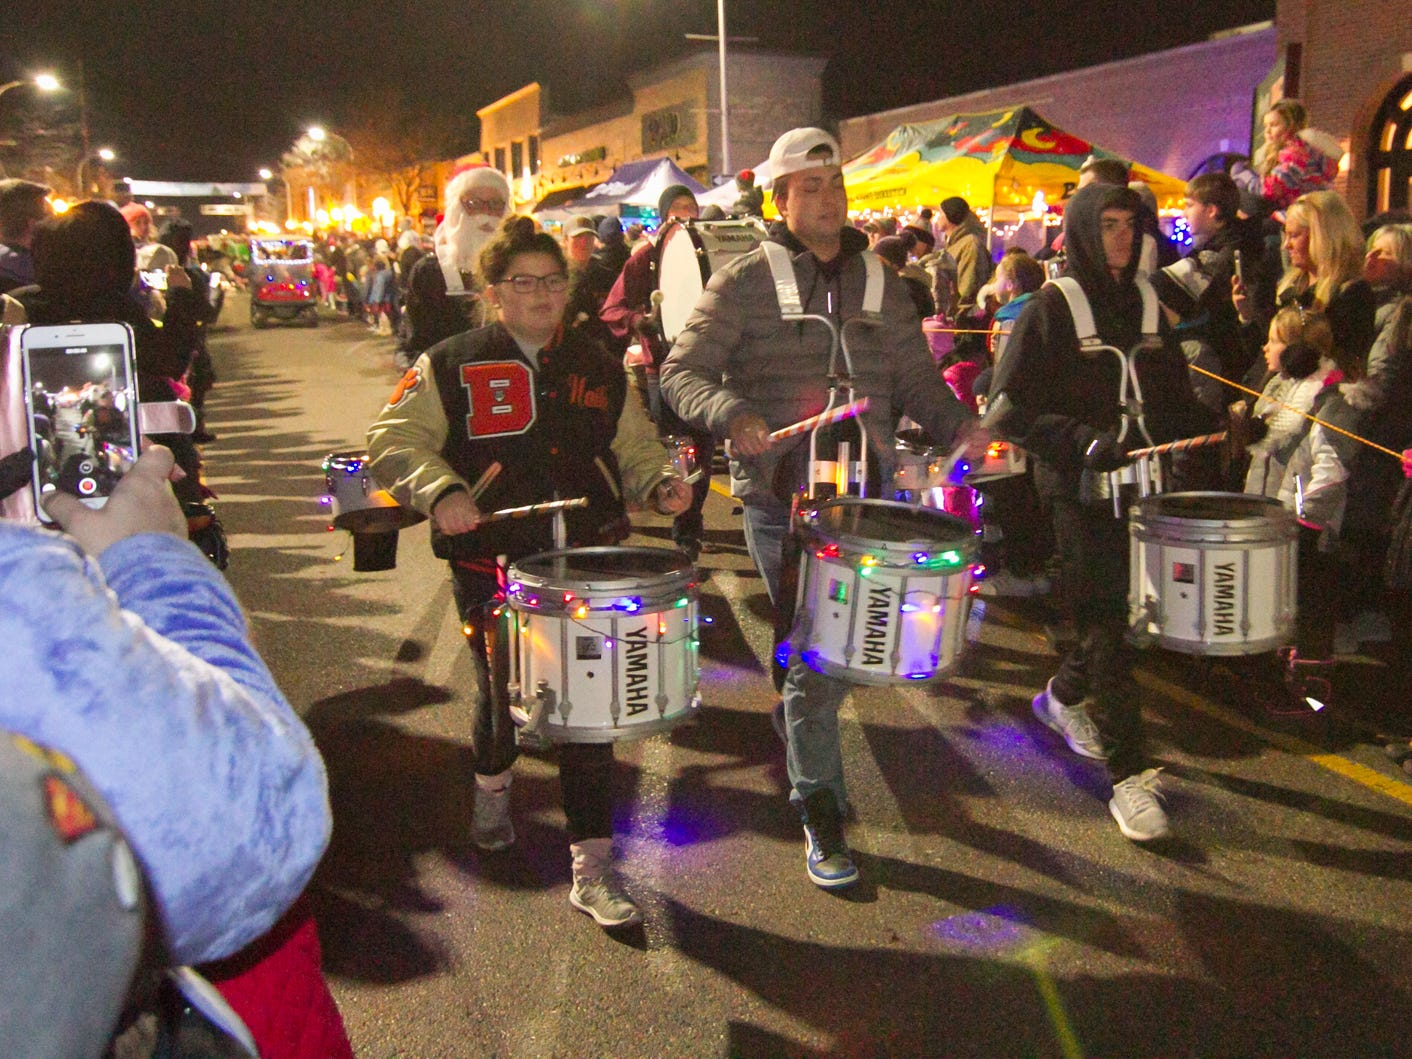 Members of Brighton's marching band lead the procession of Santa and reindeer in the Holiday Glow Saturday, Nov. 17, 2018.